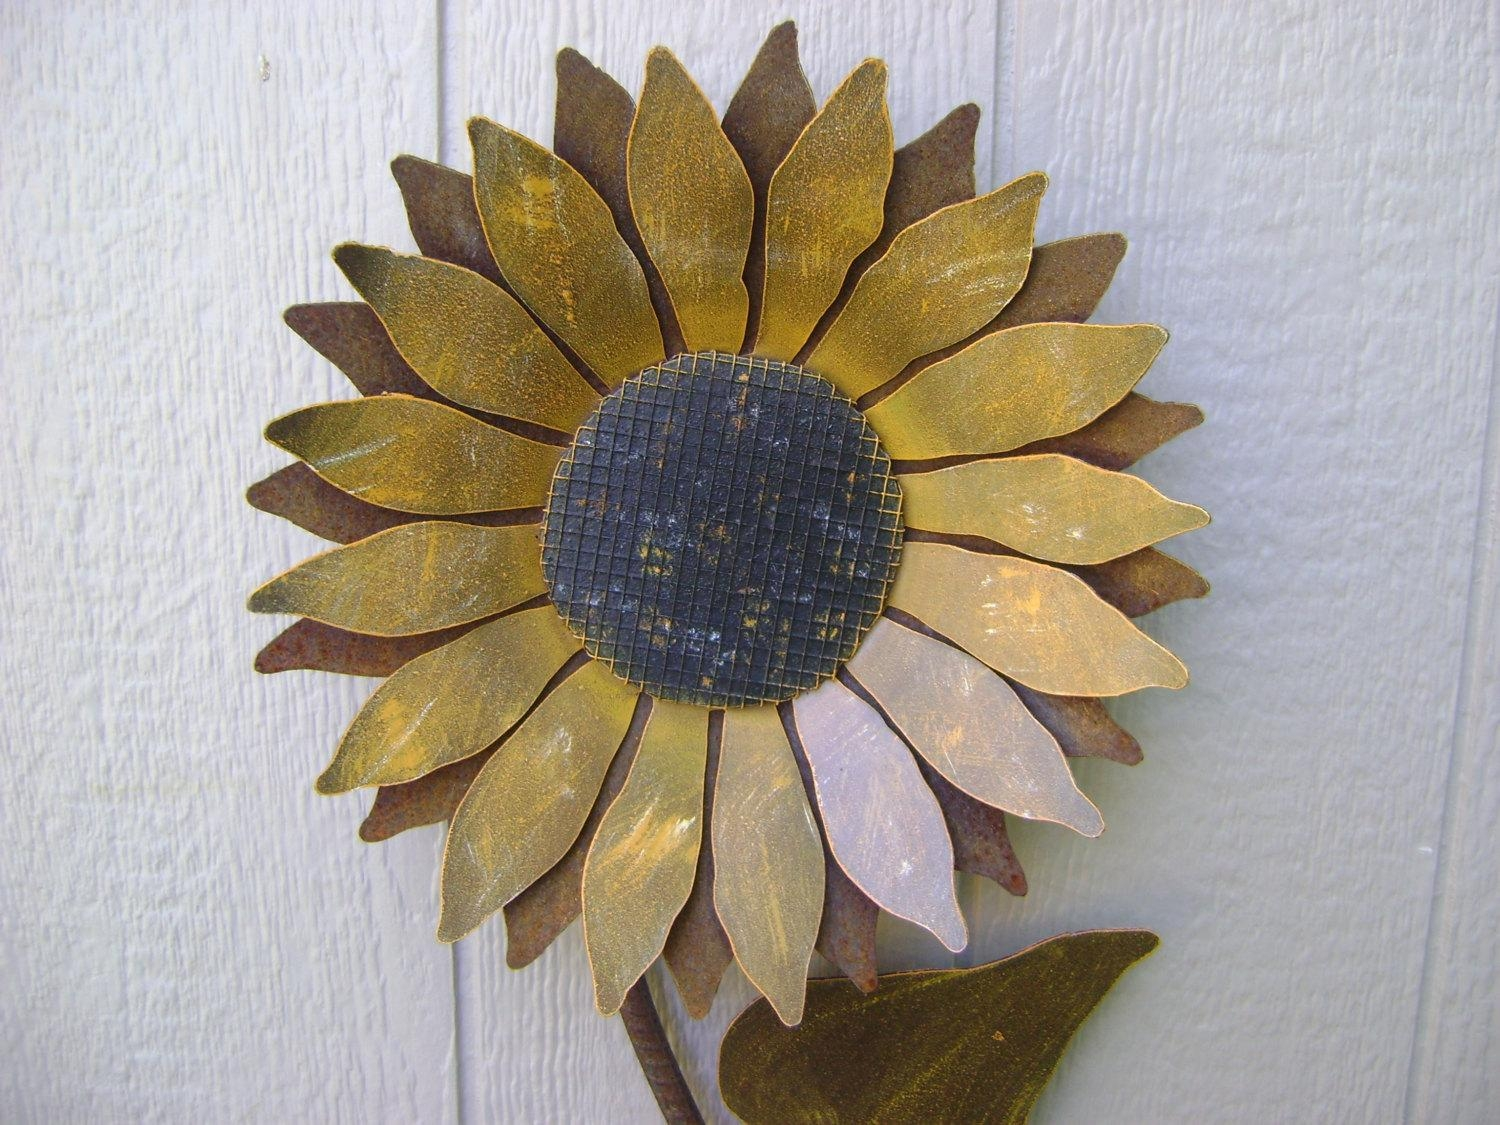 Sunflower Metal Garden Art Sunflower Wall Art Rusty Metal Pertaining To Metal Sunflower Wall Art (Image 10 of 20)